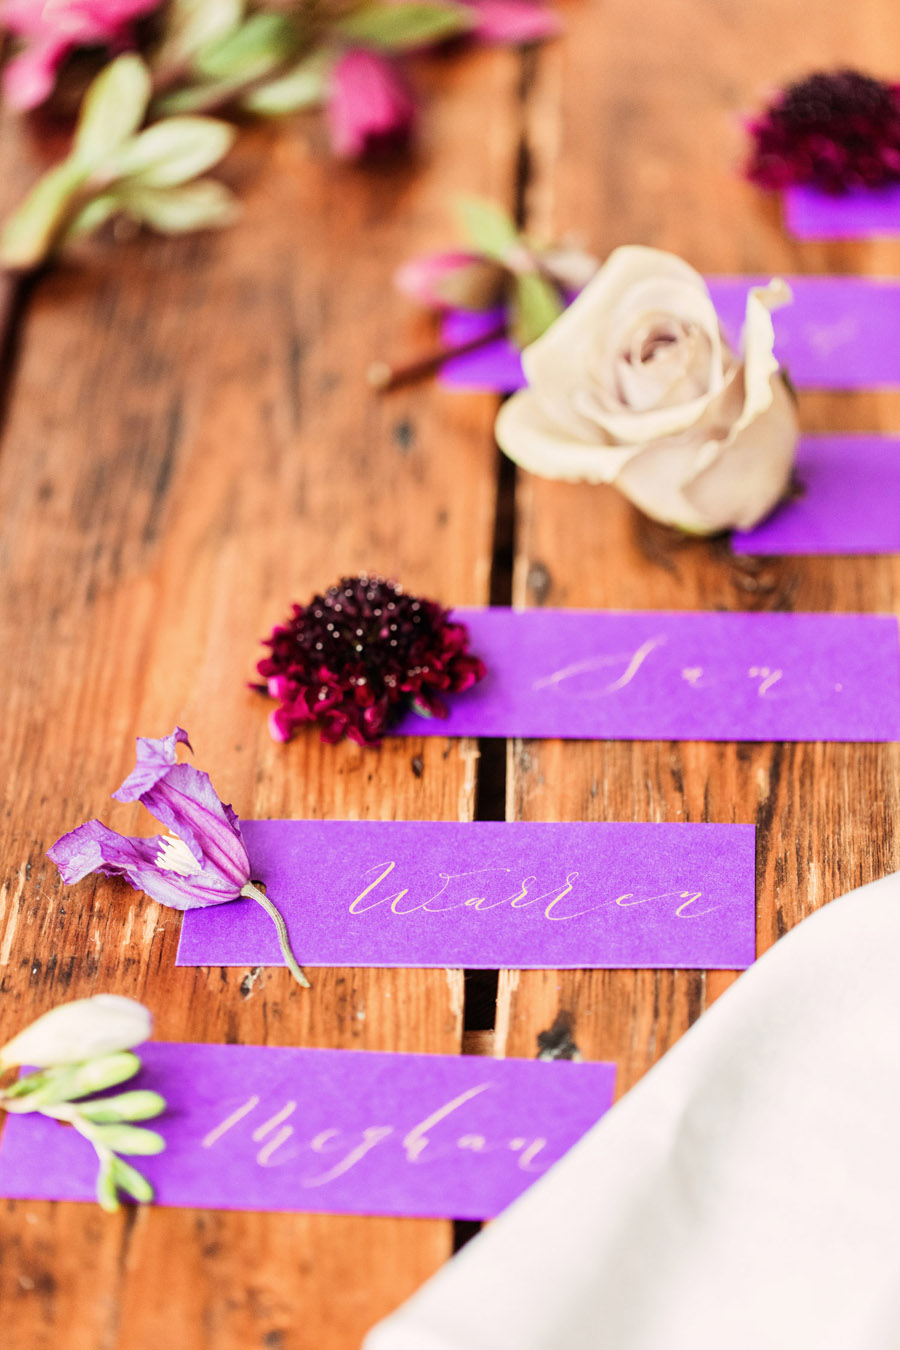 Calligraphy wedding service for place names and more - written by By Moon and Tide Calligraphy - image credit Camilla Lucinda (8)